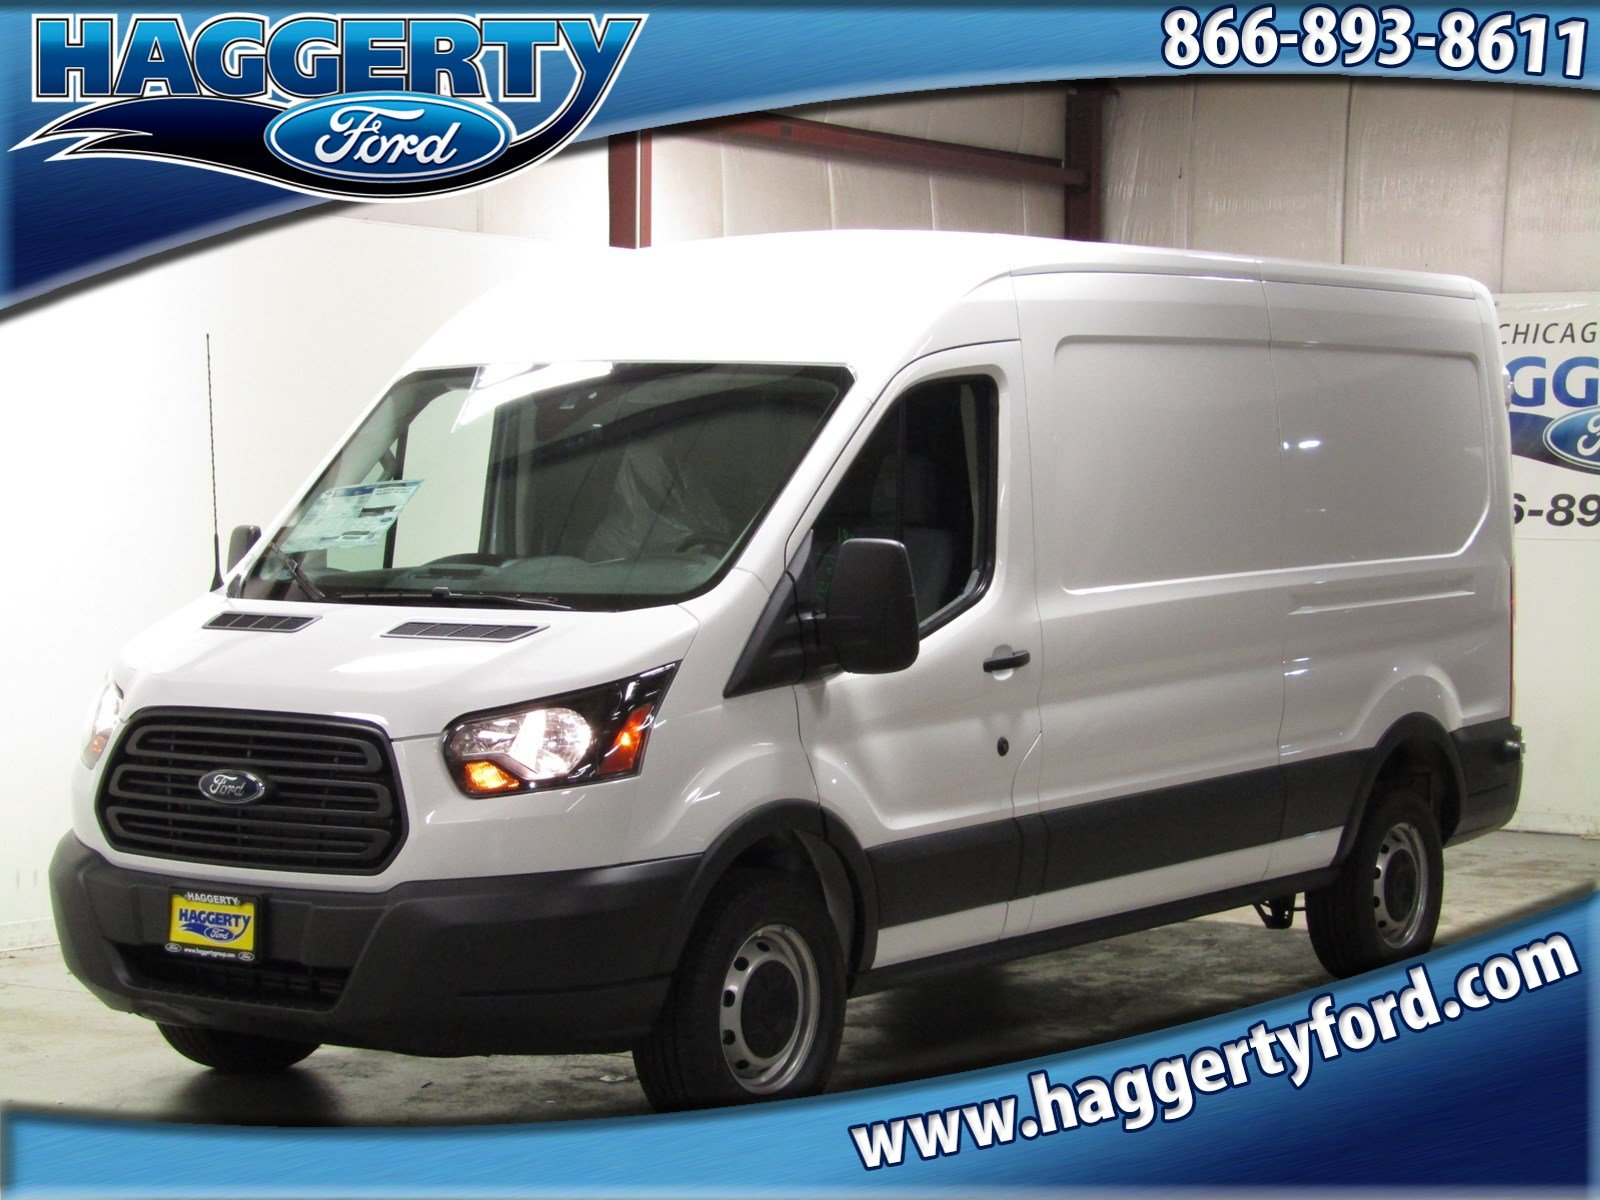 d356417e84 New 2018 Ford Transit Van 250 MR Cargo Van Full-size Cargo Van in ...